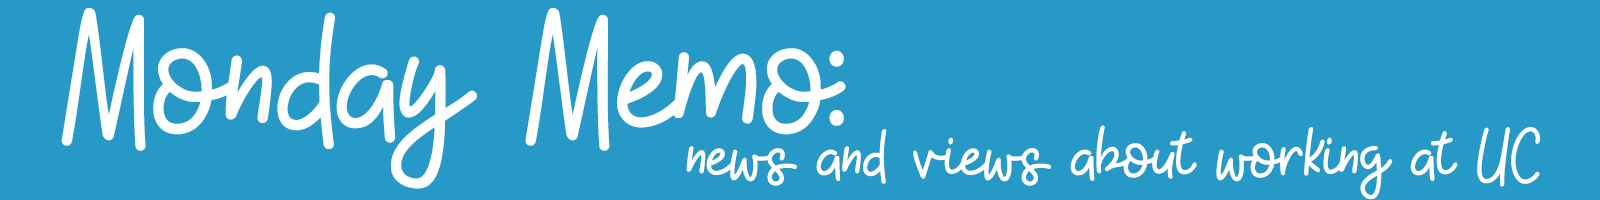 Monday Memo: news & views about working at UC